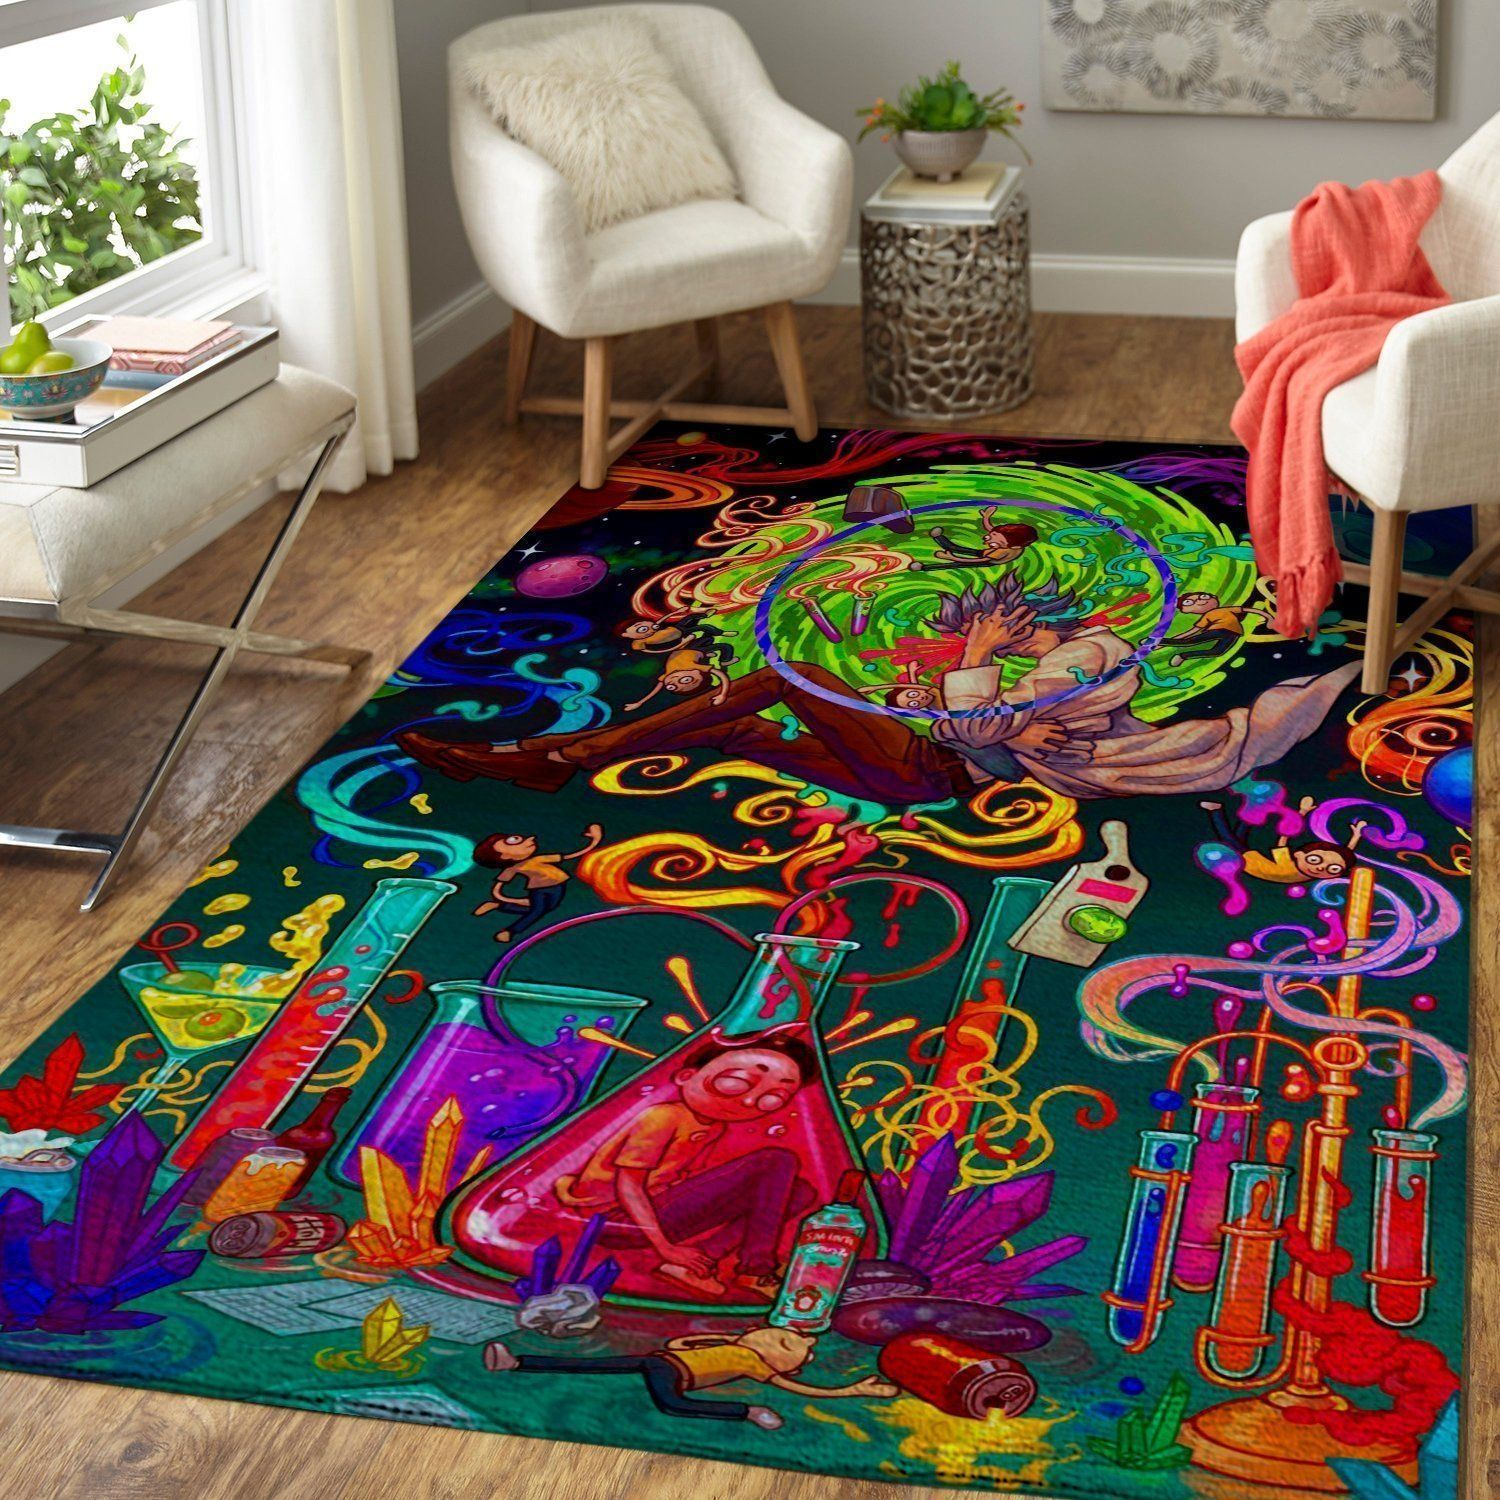 Rick & Morty Area Rugs, Chaos Colorful Movie Living Room Carpet, Custom Floor Decor 2